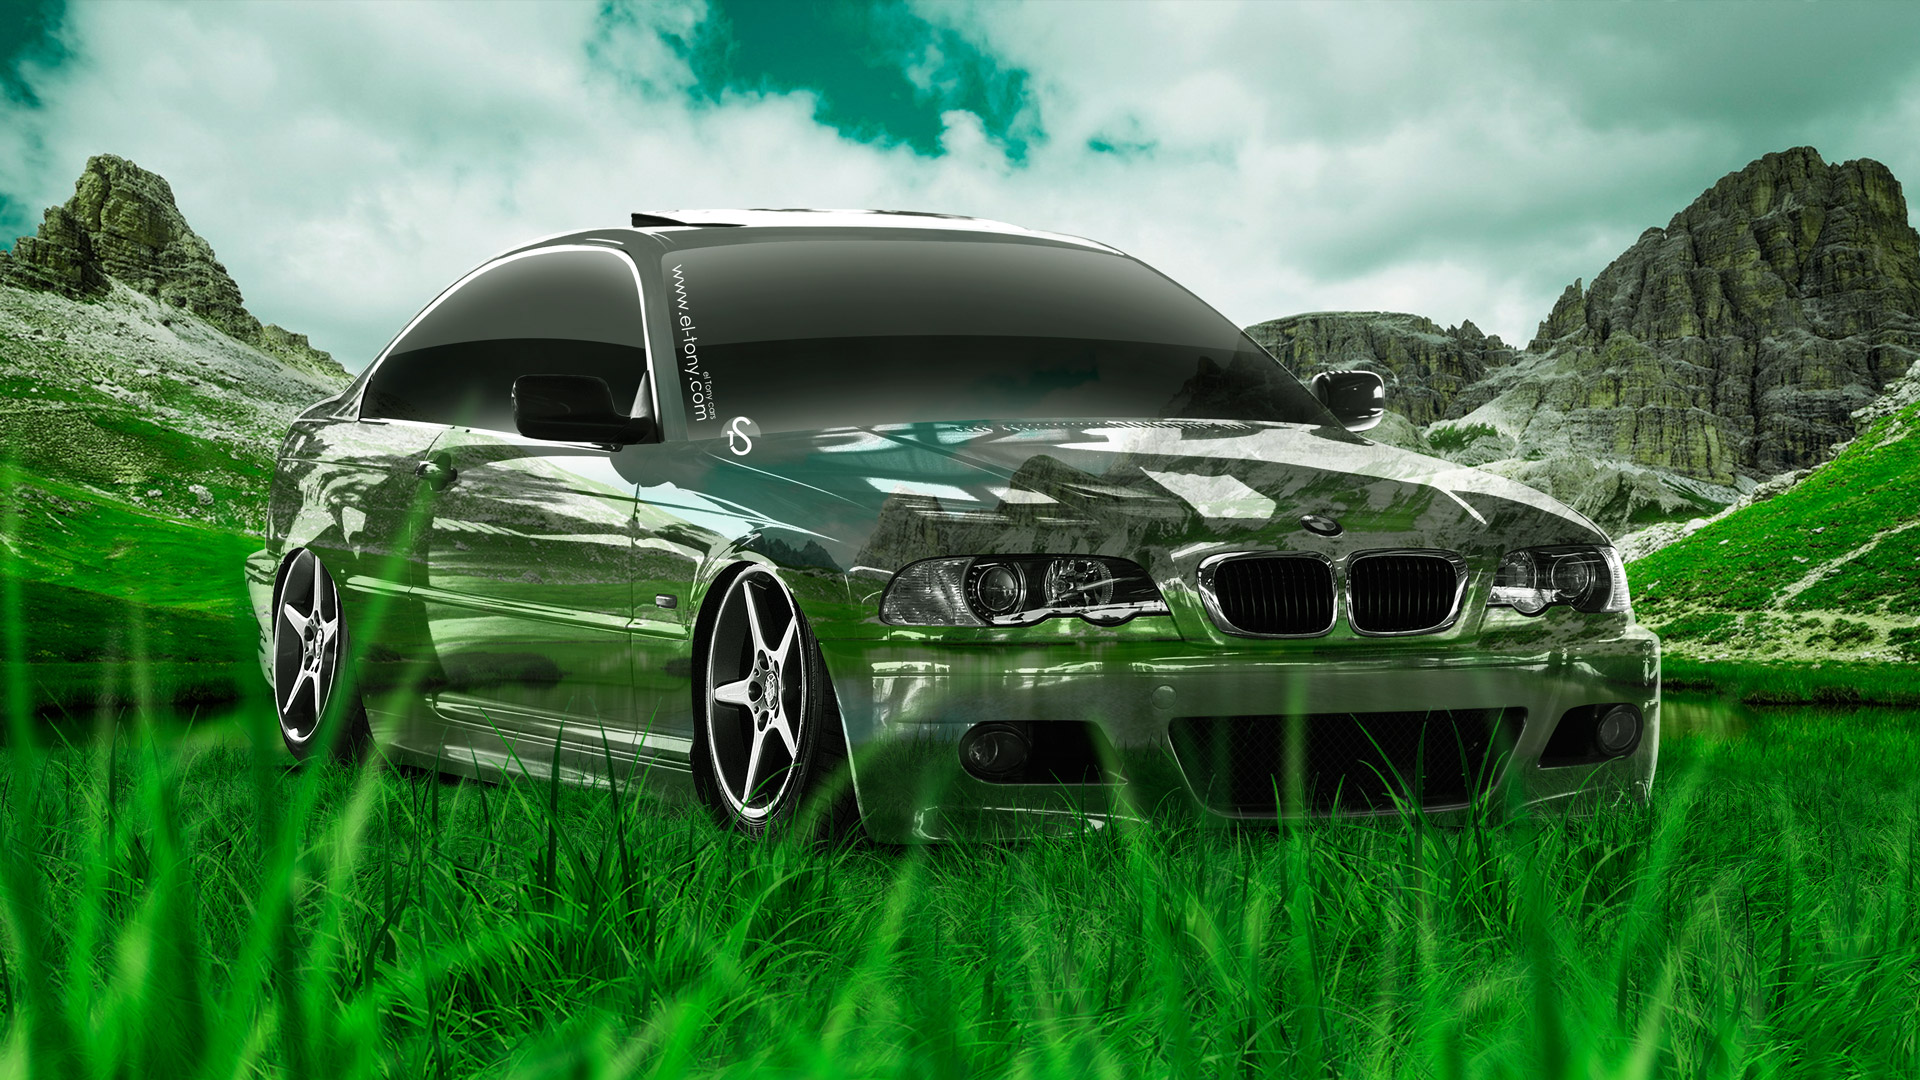 BMW M3 E46 Crystal City Car 2014 · BMW M3 Crystal Nature Car 2014